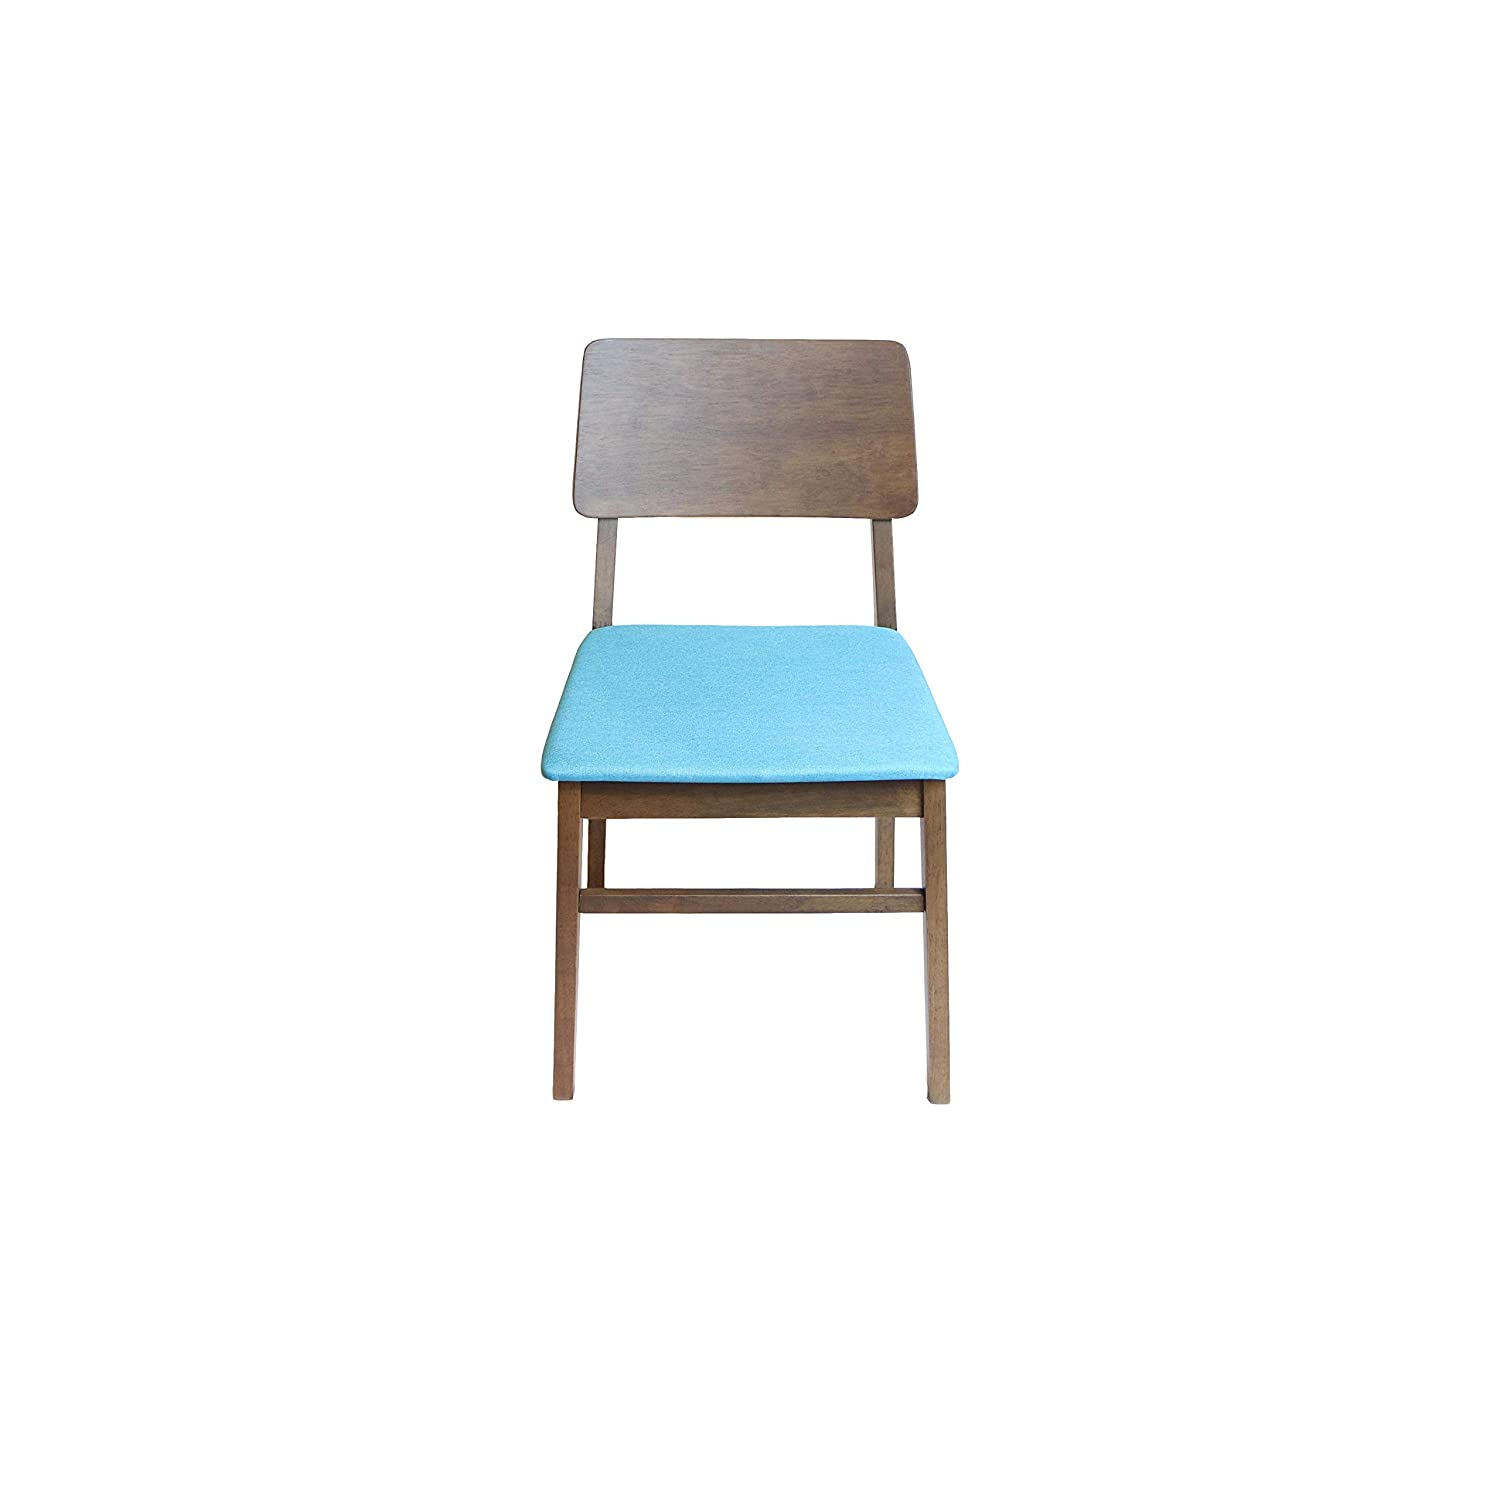 Amazon.com - AVRS Solid Wood Dining Chair Set of 2 (Blue ...